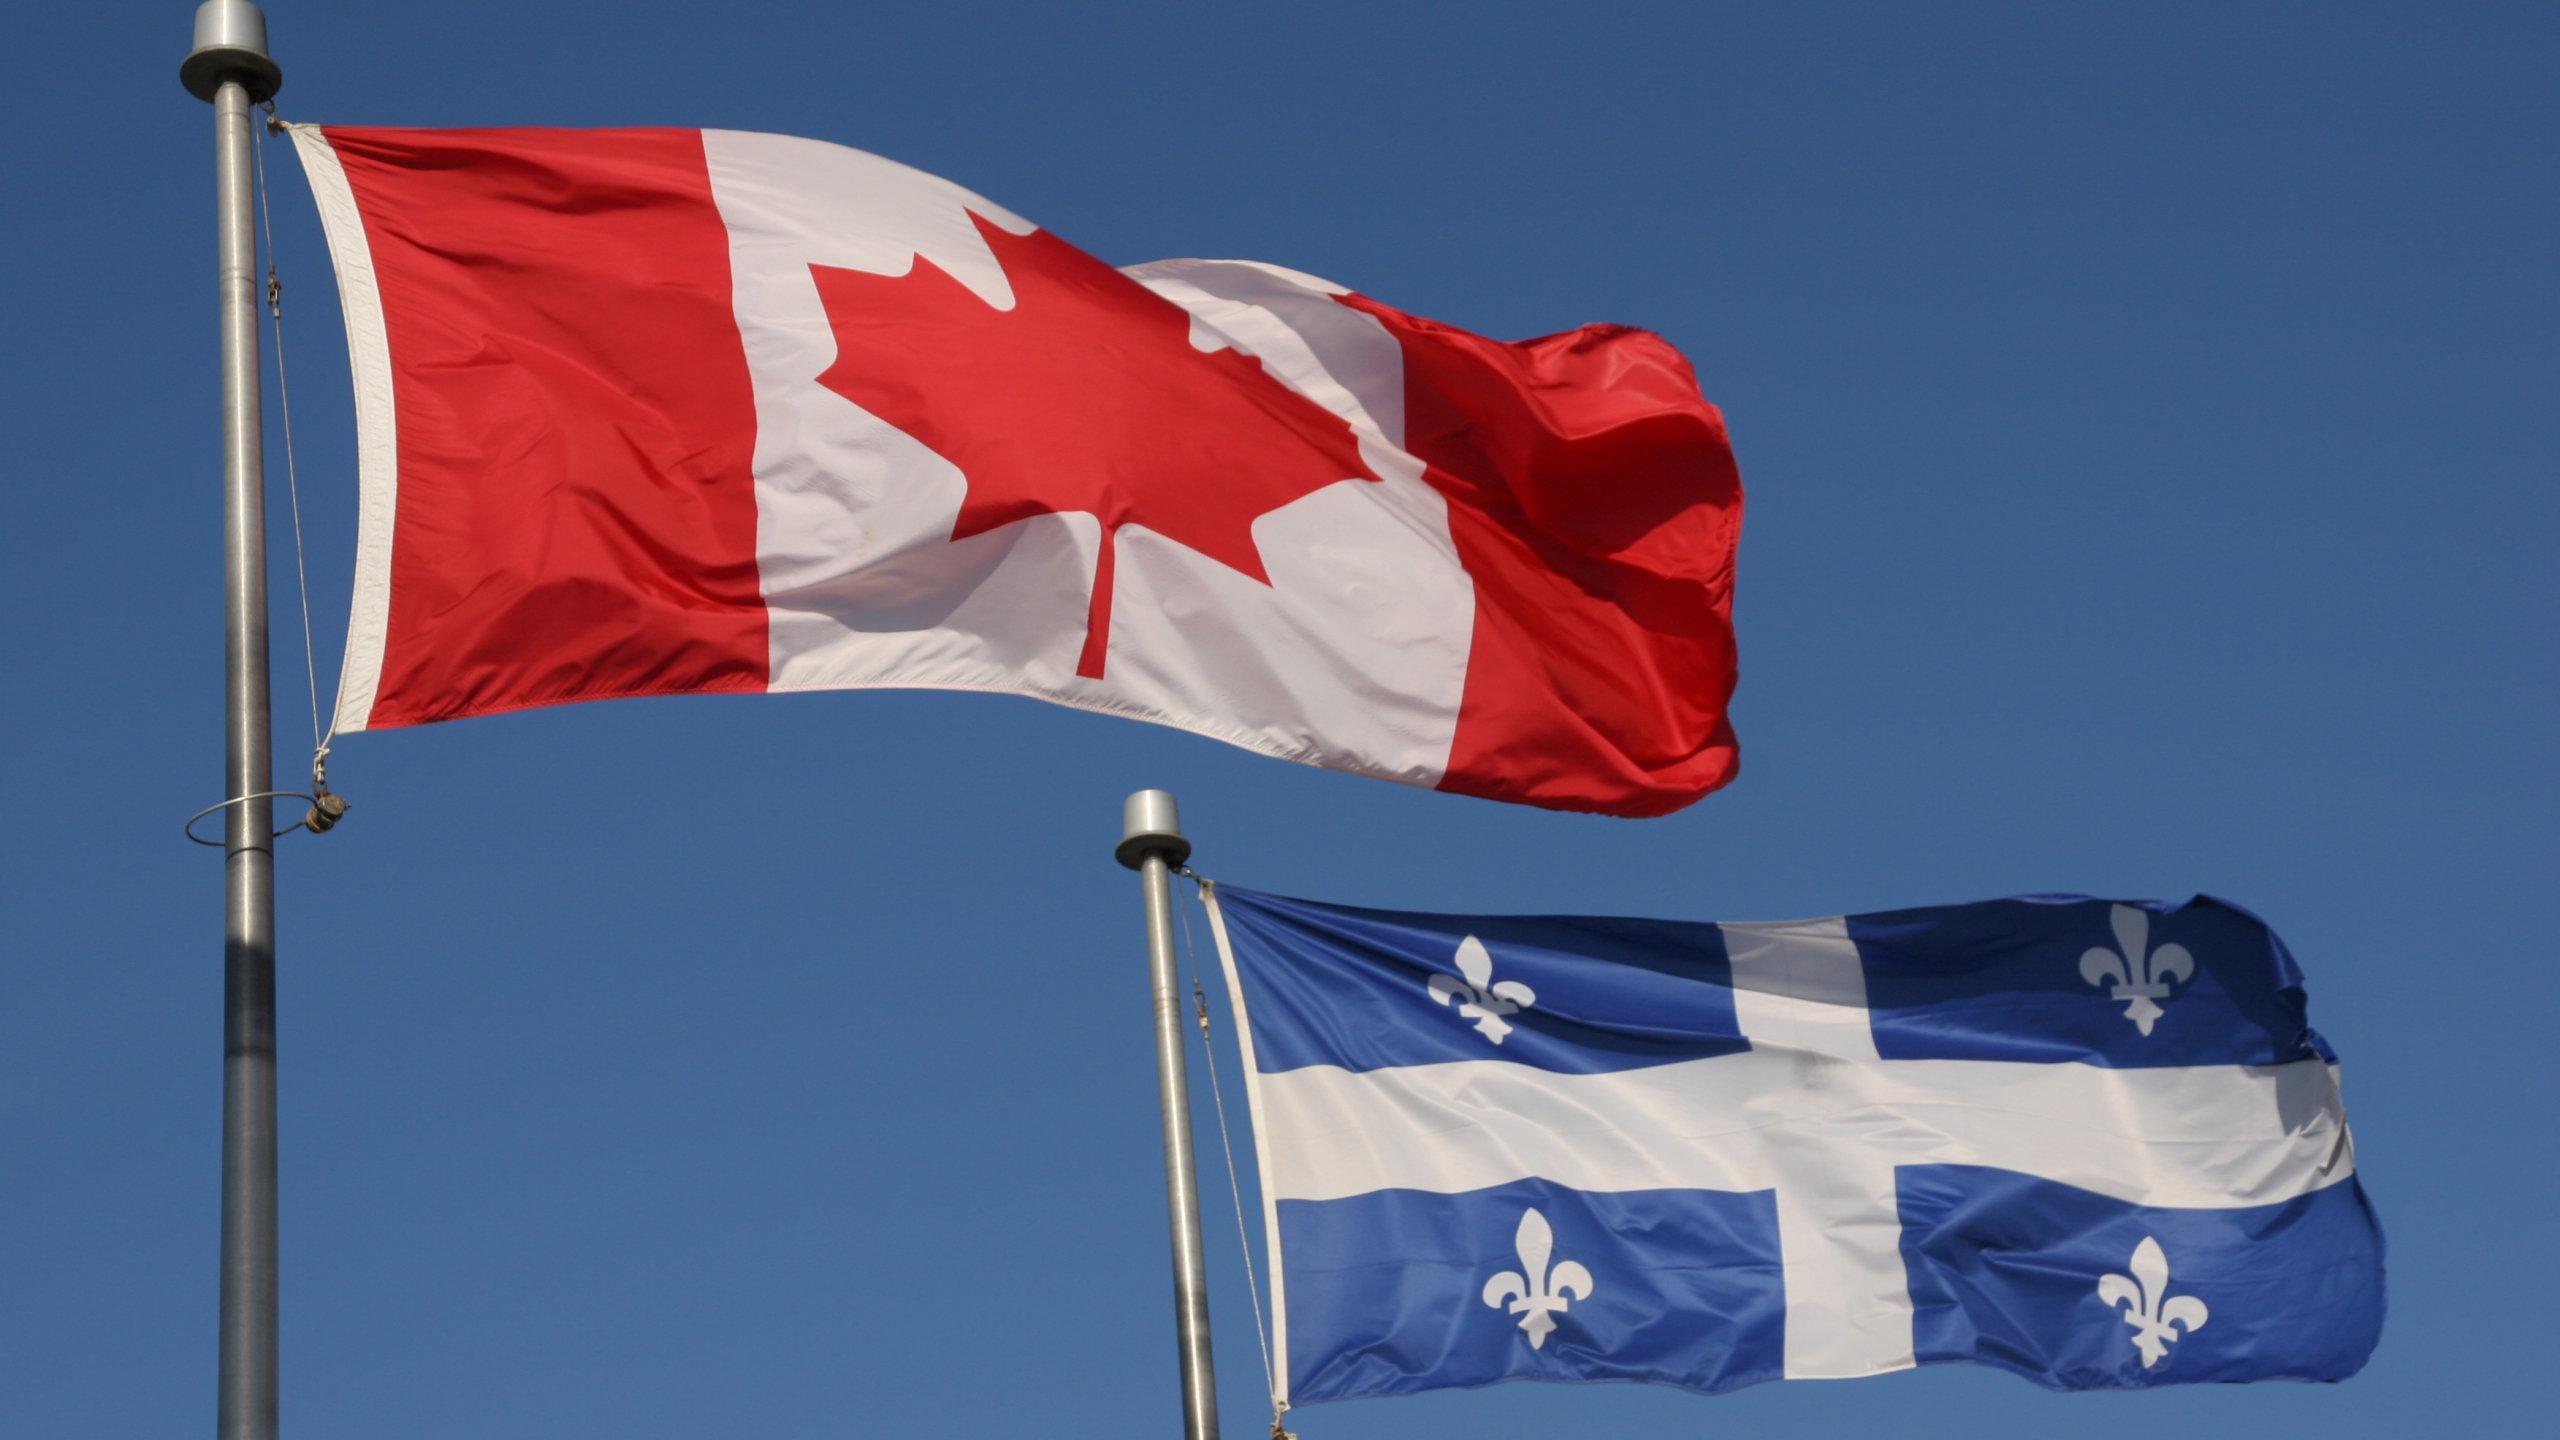 Canadian and Quebec flags are seen in a file photo. (iStock/Getty Images Plus)